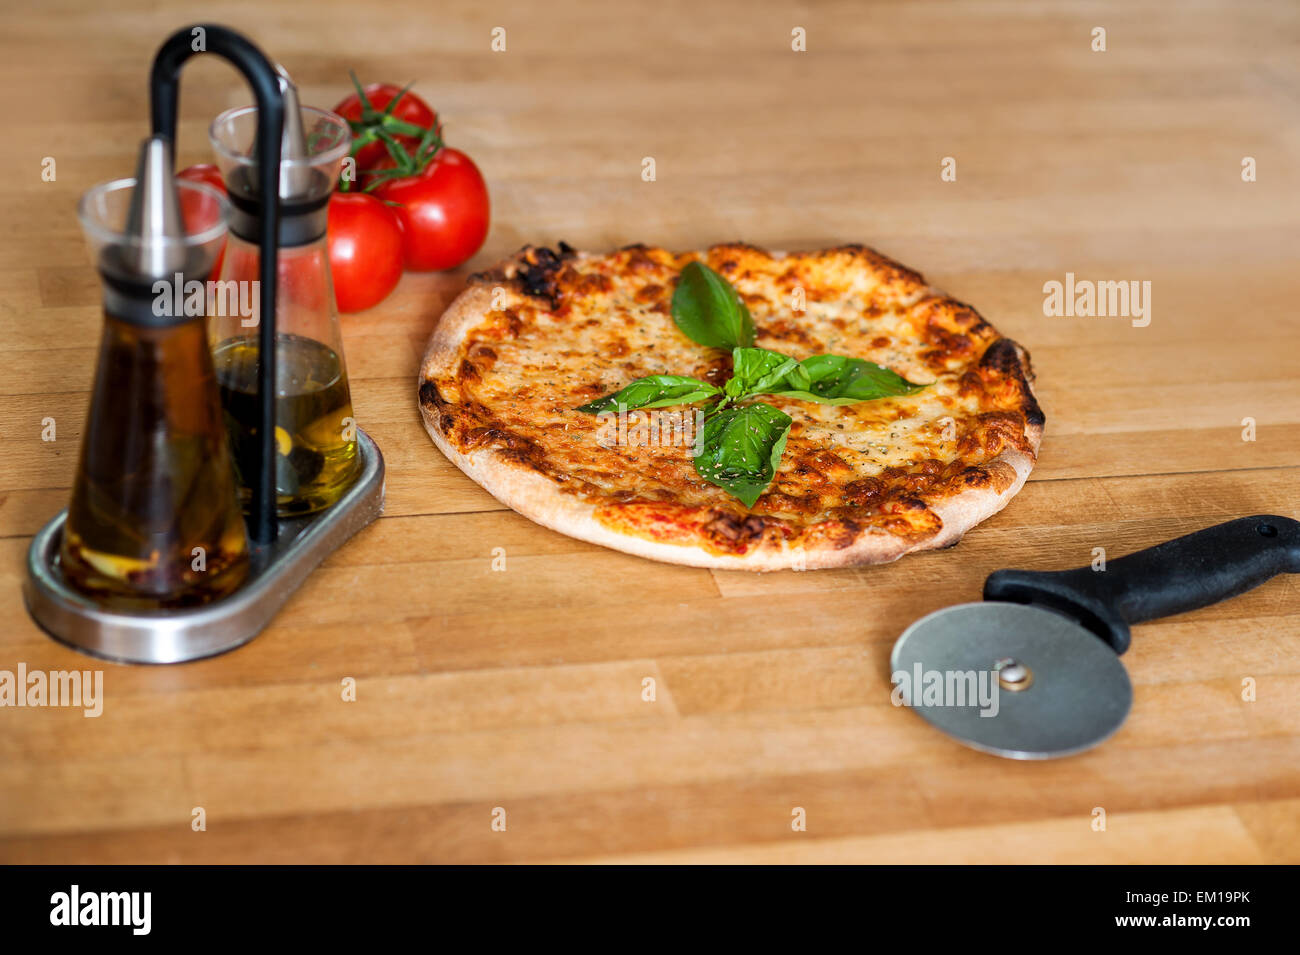 Pizza is ready, please help yourself. - Stock Image